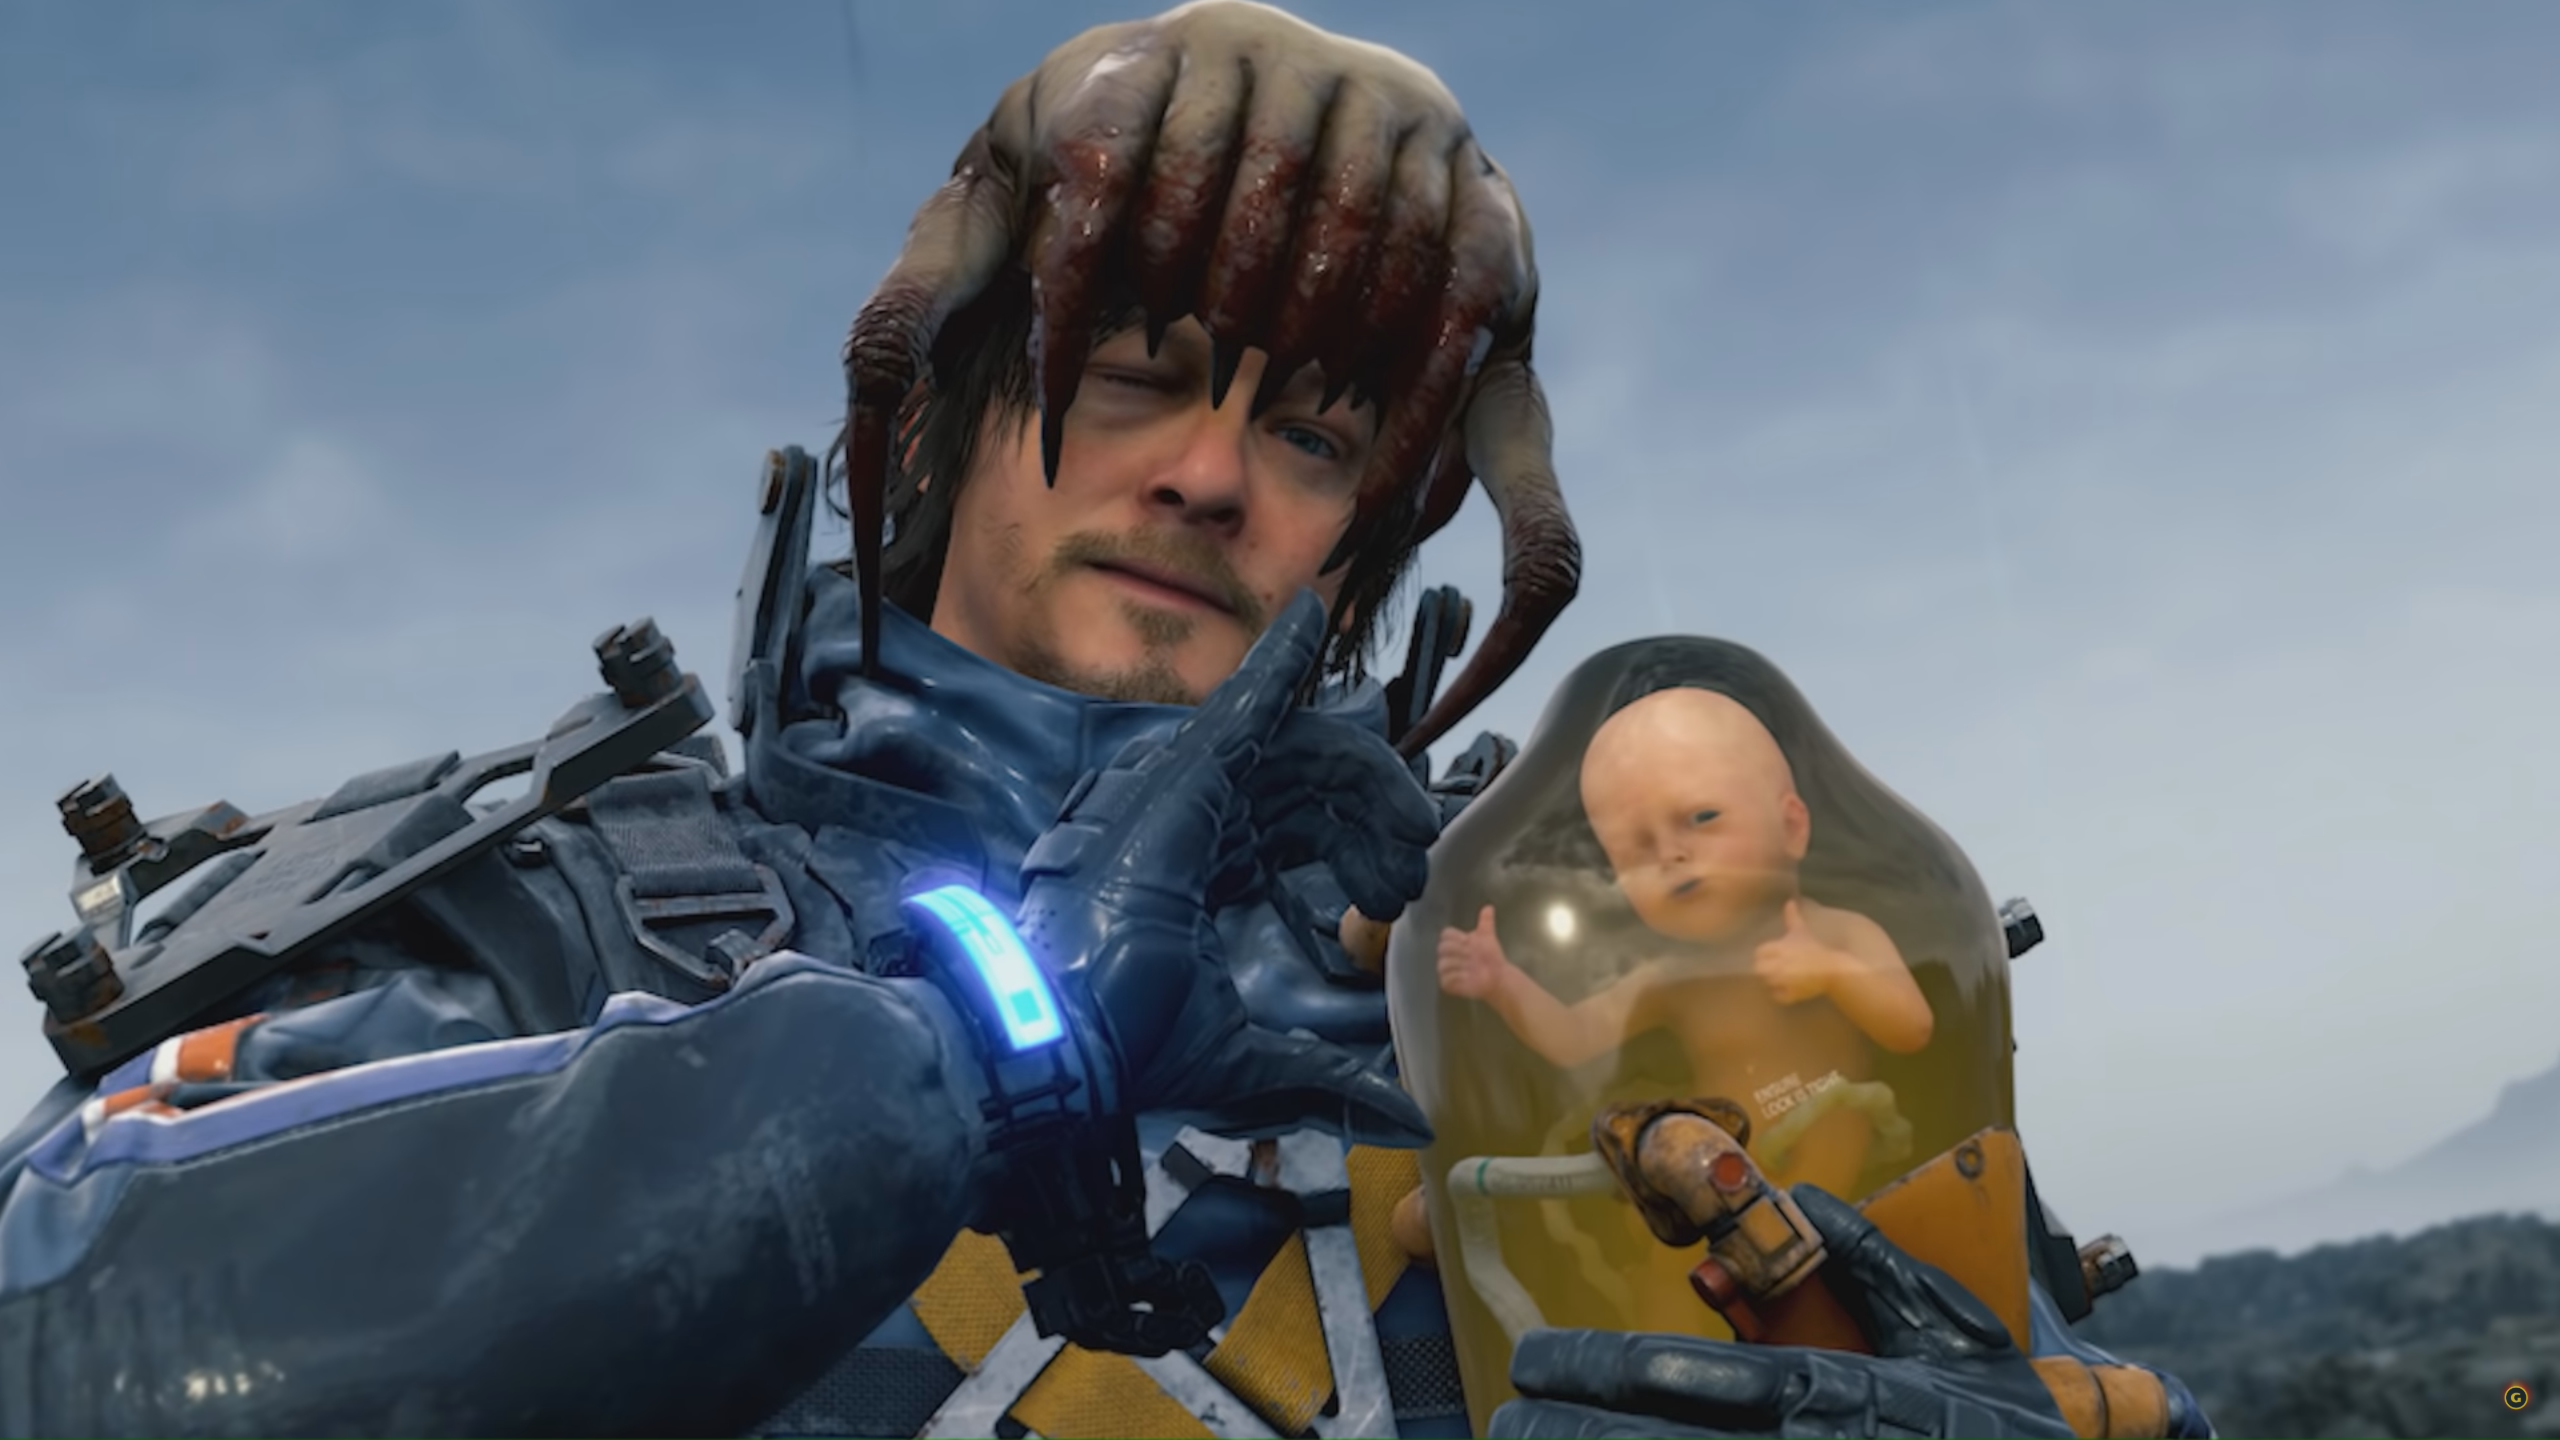 PC is the perfect way to play Death Stranding